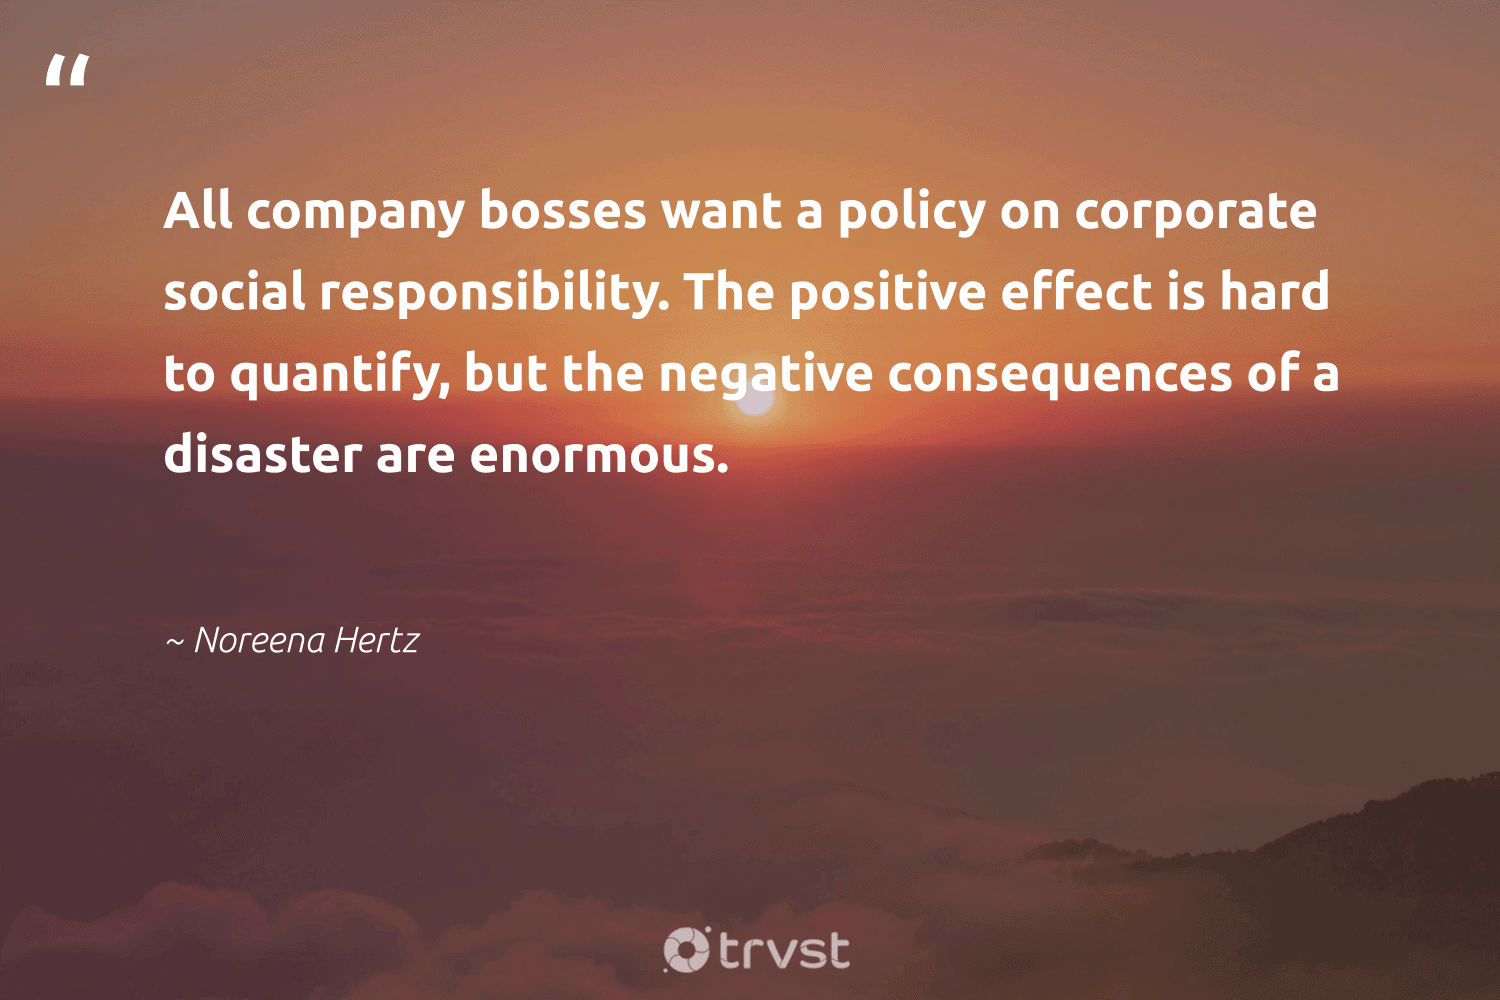 """""""All company bosses want a policy on corporate social responsibility. The positive effect is hard to quantify, but the negative consequences of a disaster are enormous.""""  - Noreena Hertz #trvst #quotes #CSR #corporatesocialresponsibility #betterplanet #sustainable #dogood #corporatevolunteering #ecoconscious #giveback #socialchange #futurebusiness"""